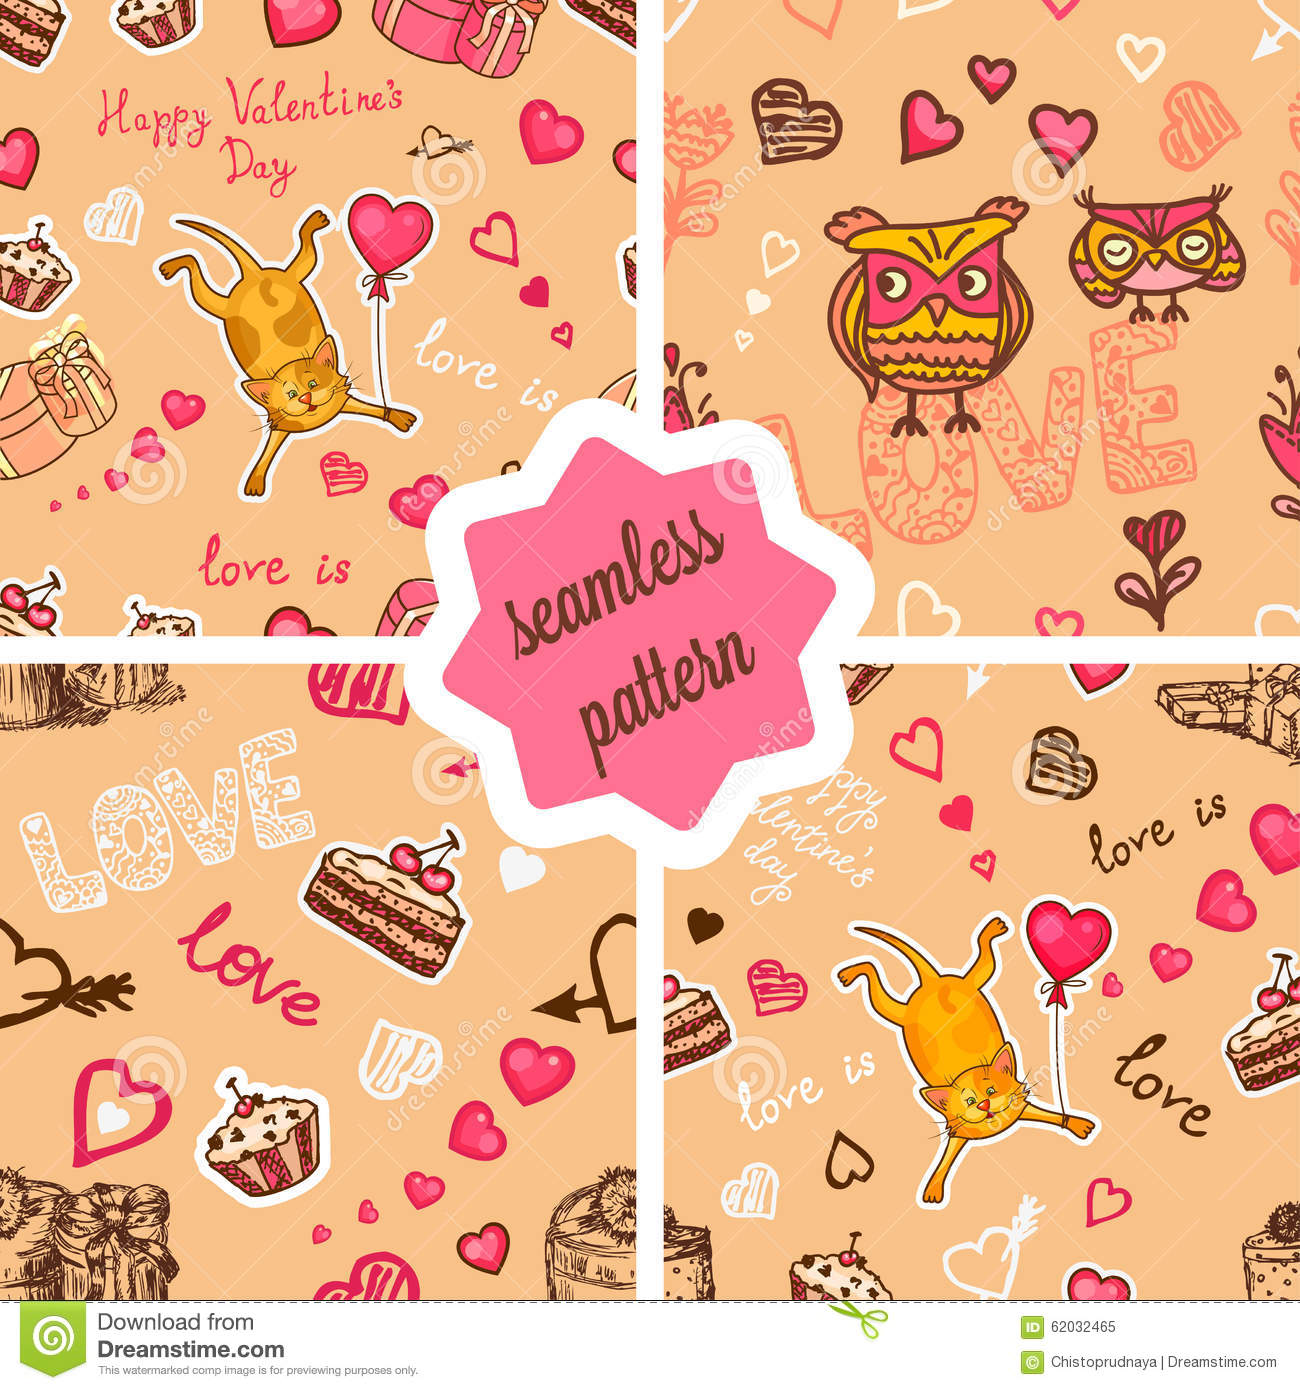 Cute valentines patterns set stock illustration image 62032465 - Cute valentines backgrounds ...